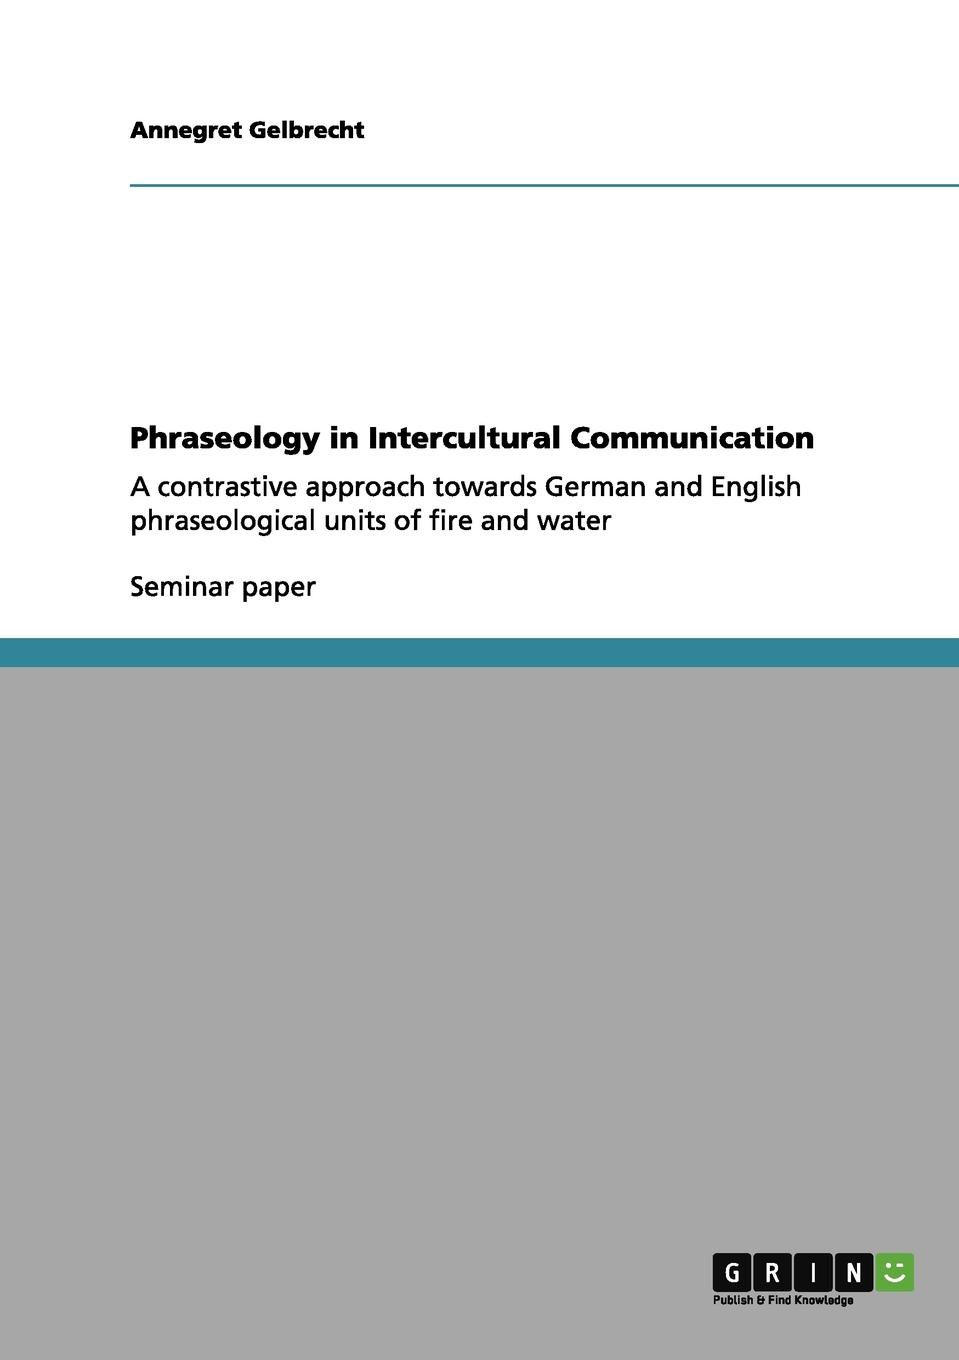 Фото - Annegret Gelbrecht Phraseology in Intercultural Communication al maskari khaled a practical guide to business writing writing in english for non native speakers